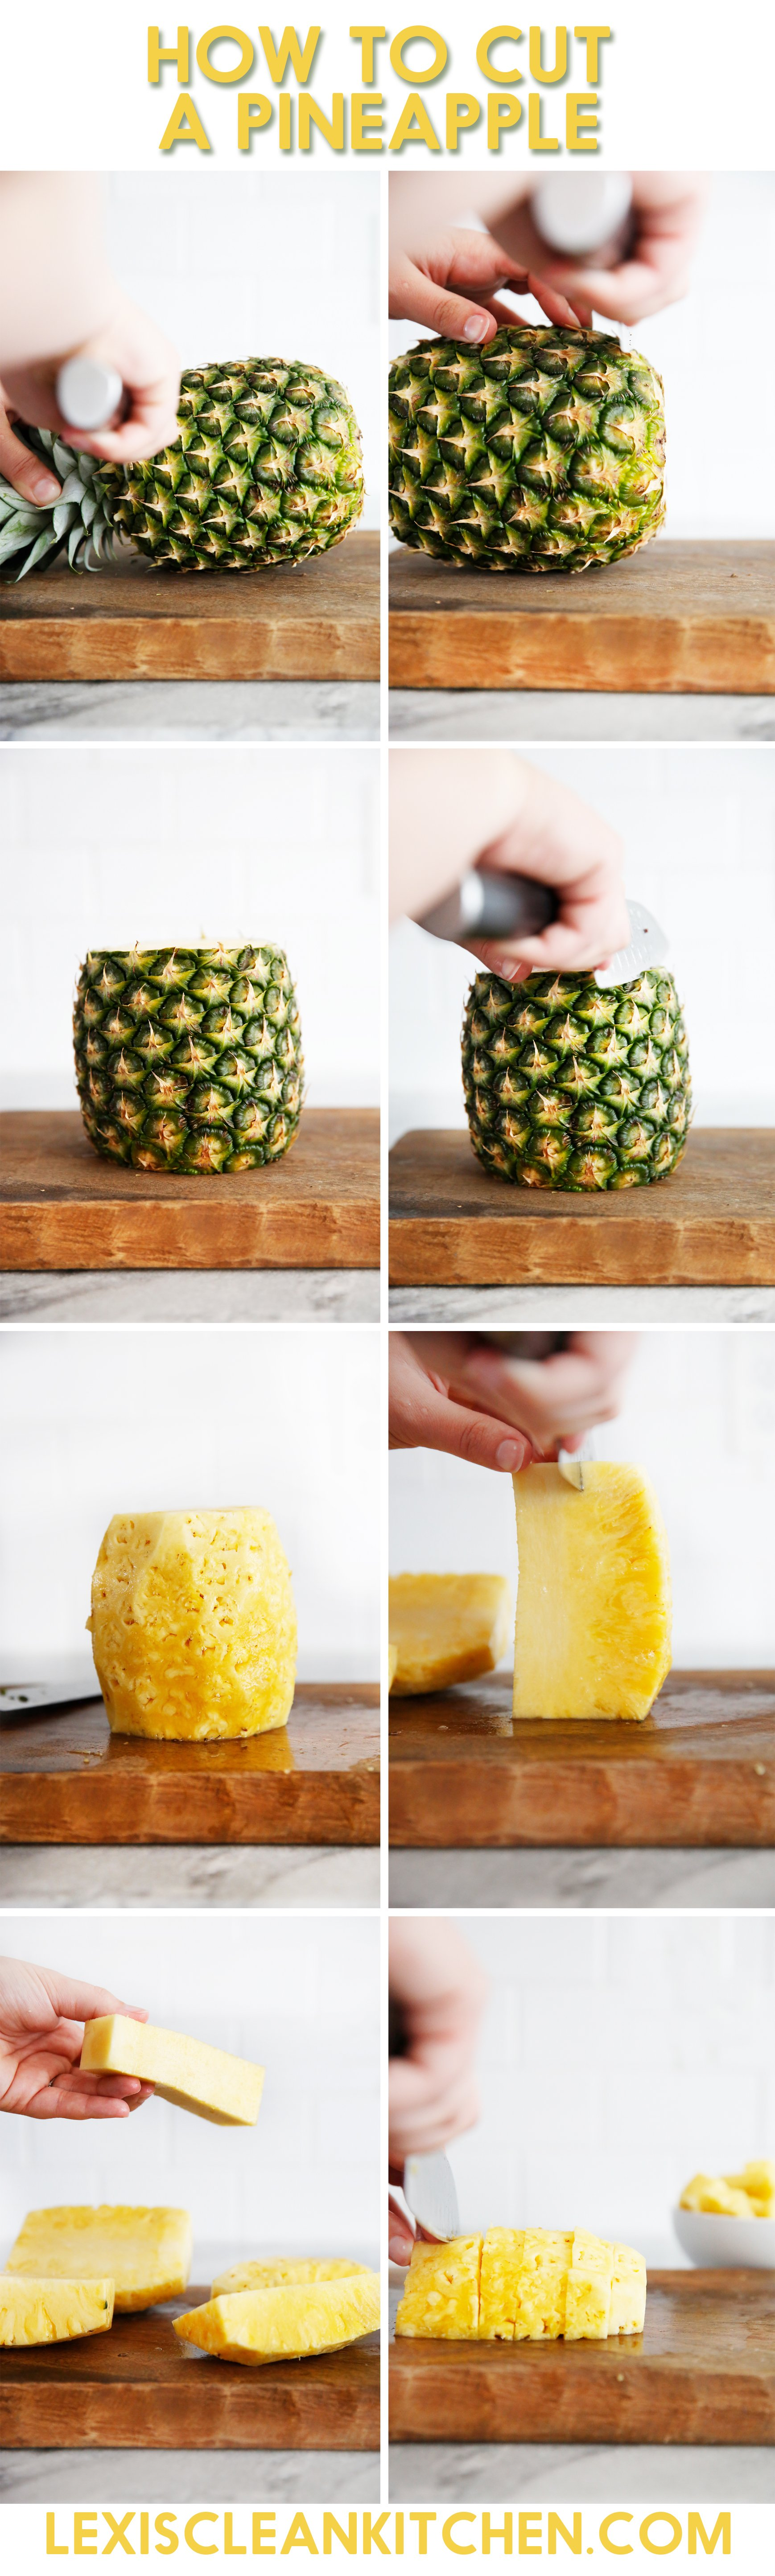 Step by step guide how to cut a pineapple